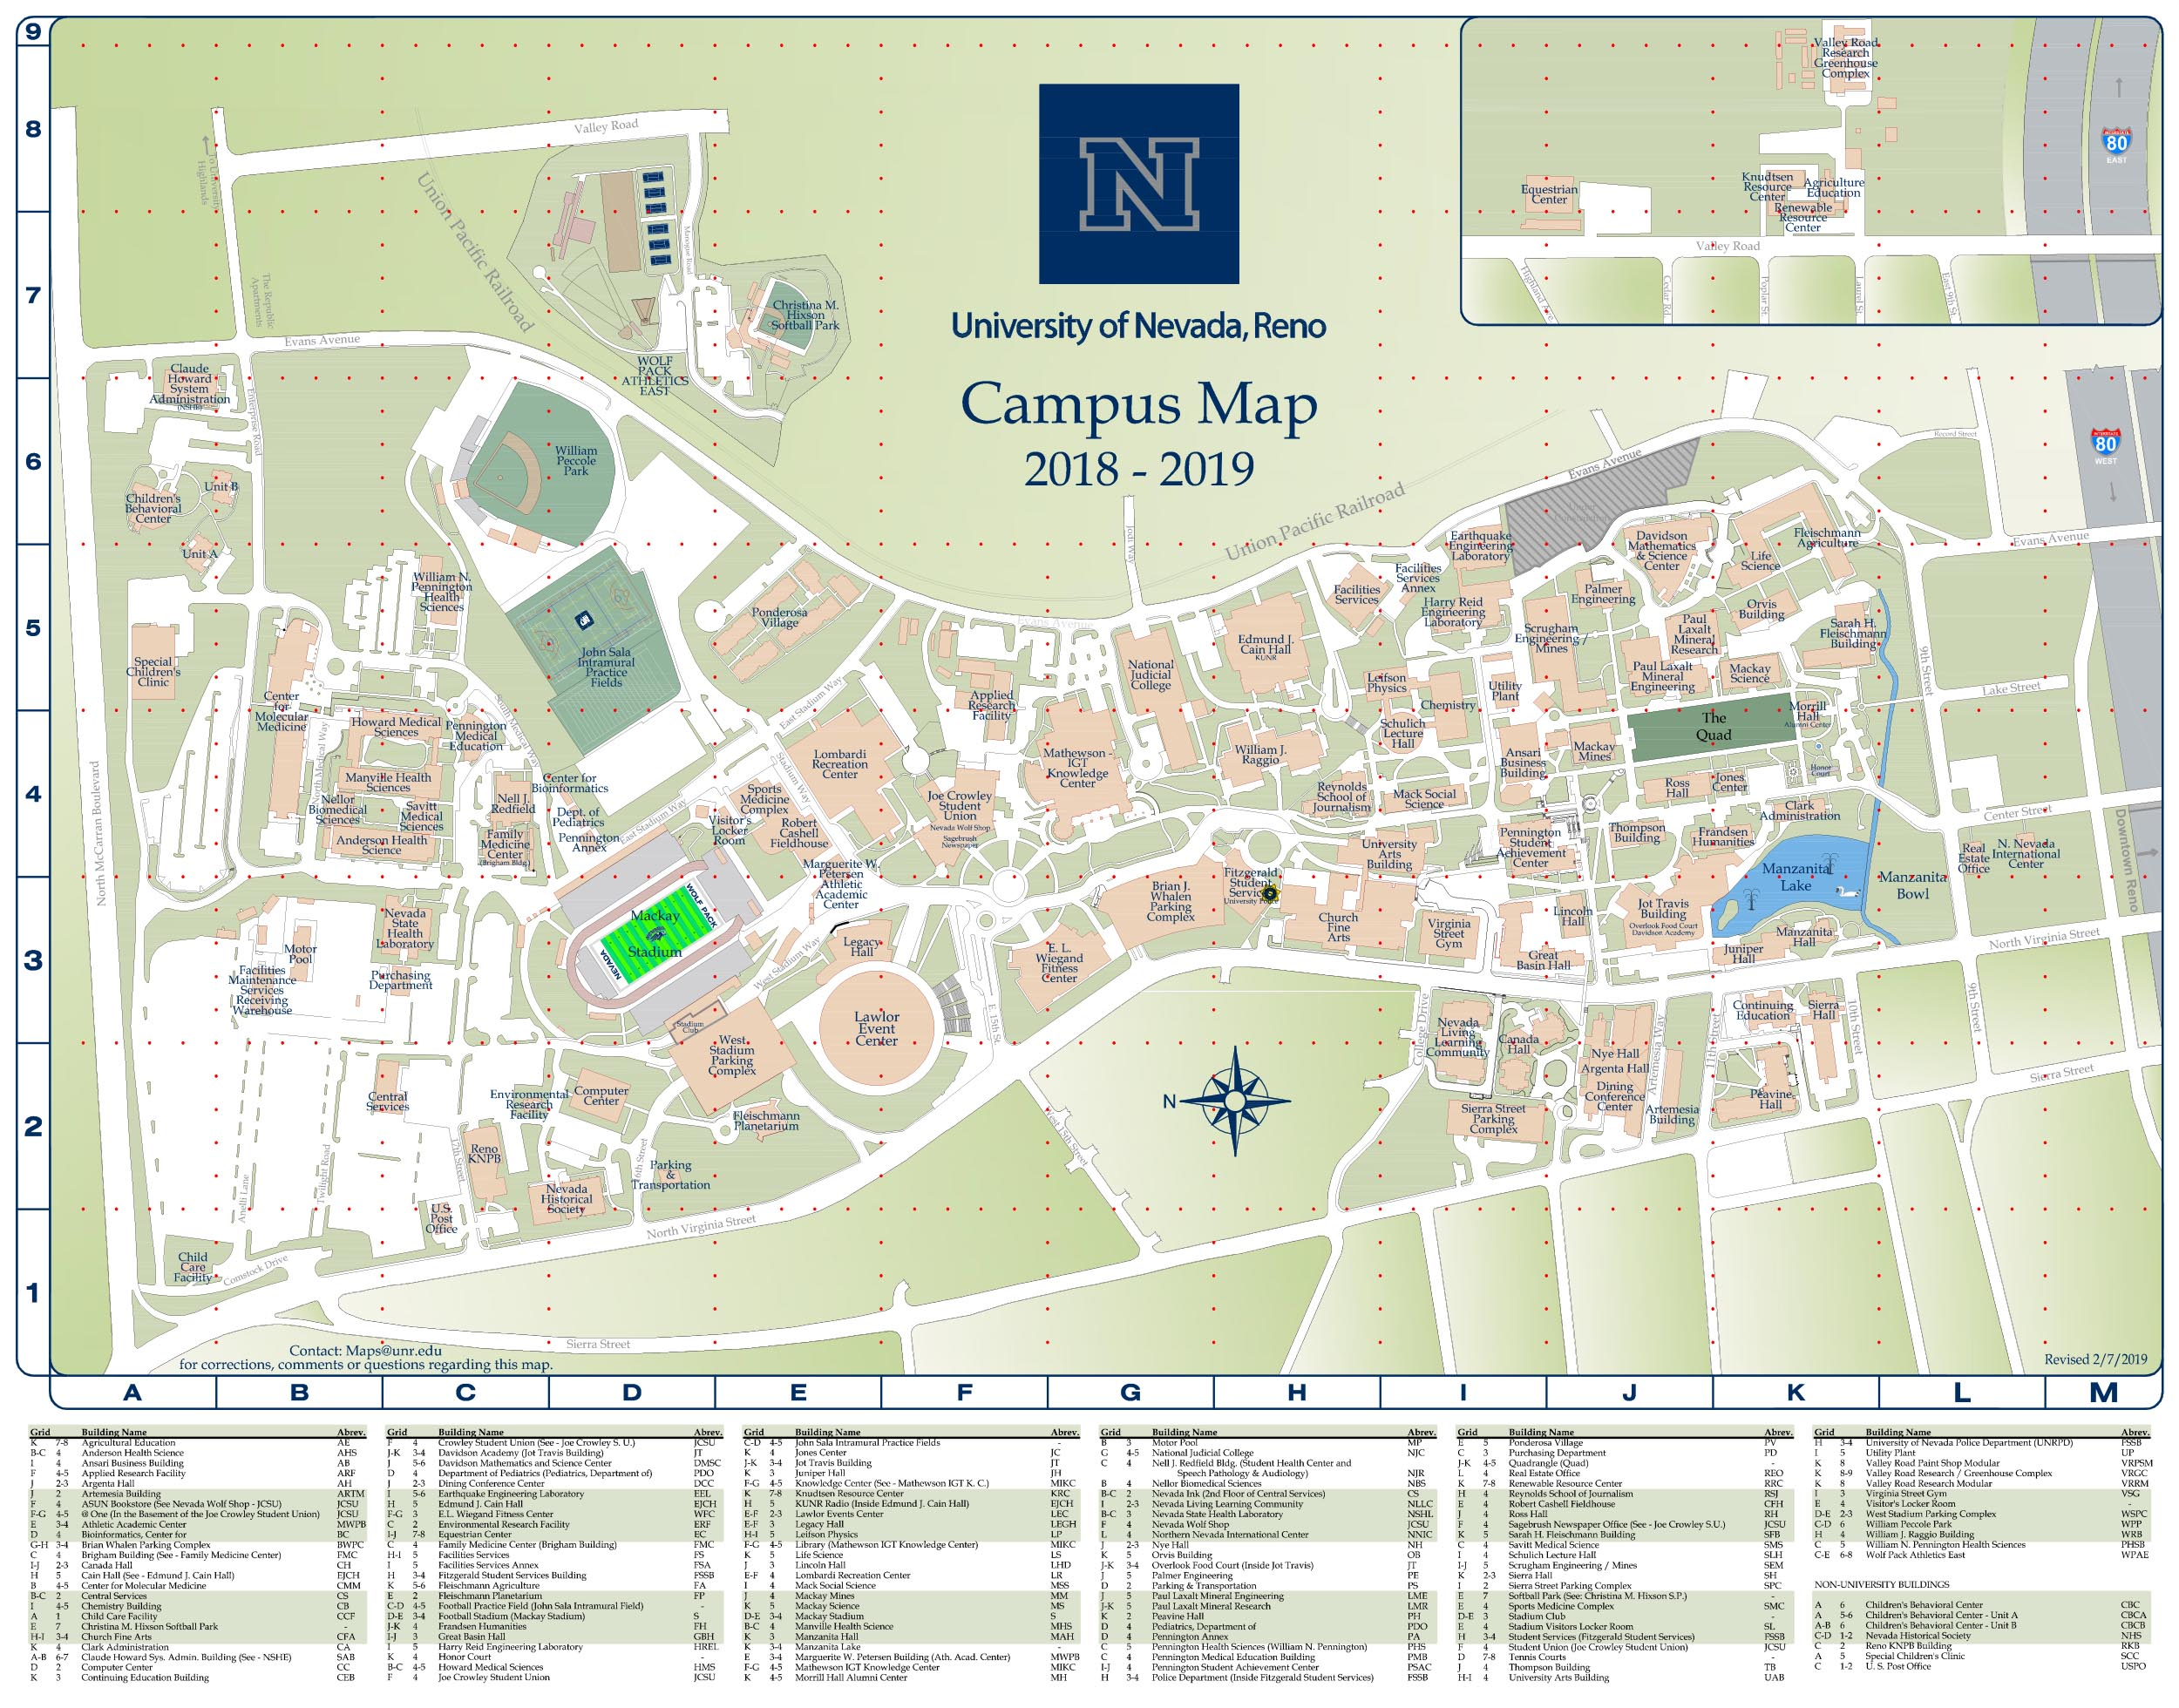 University of Nevada, Reno Campus Map